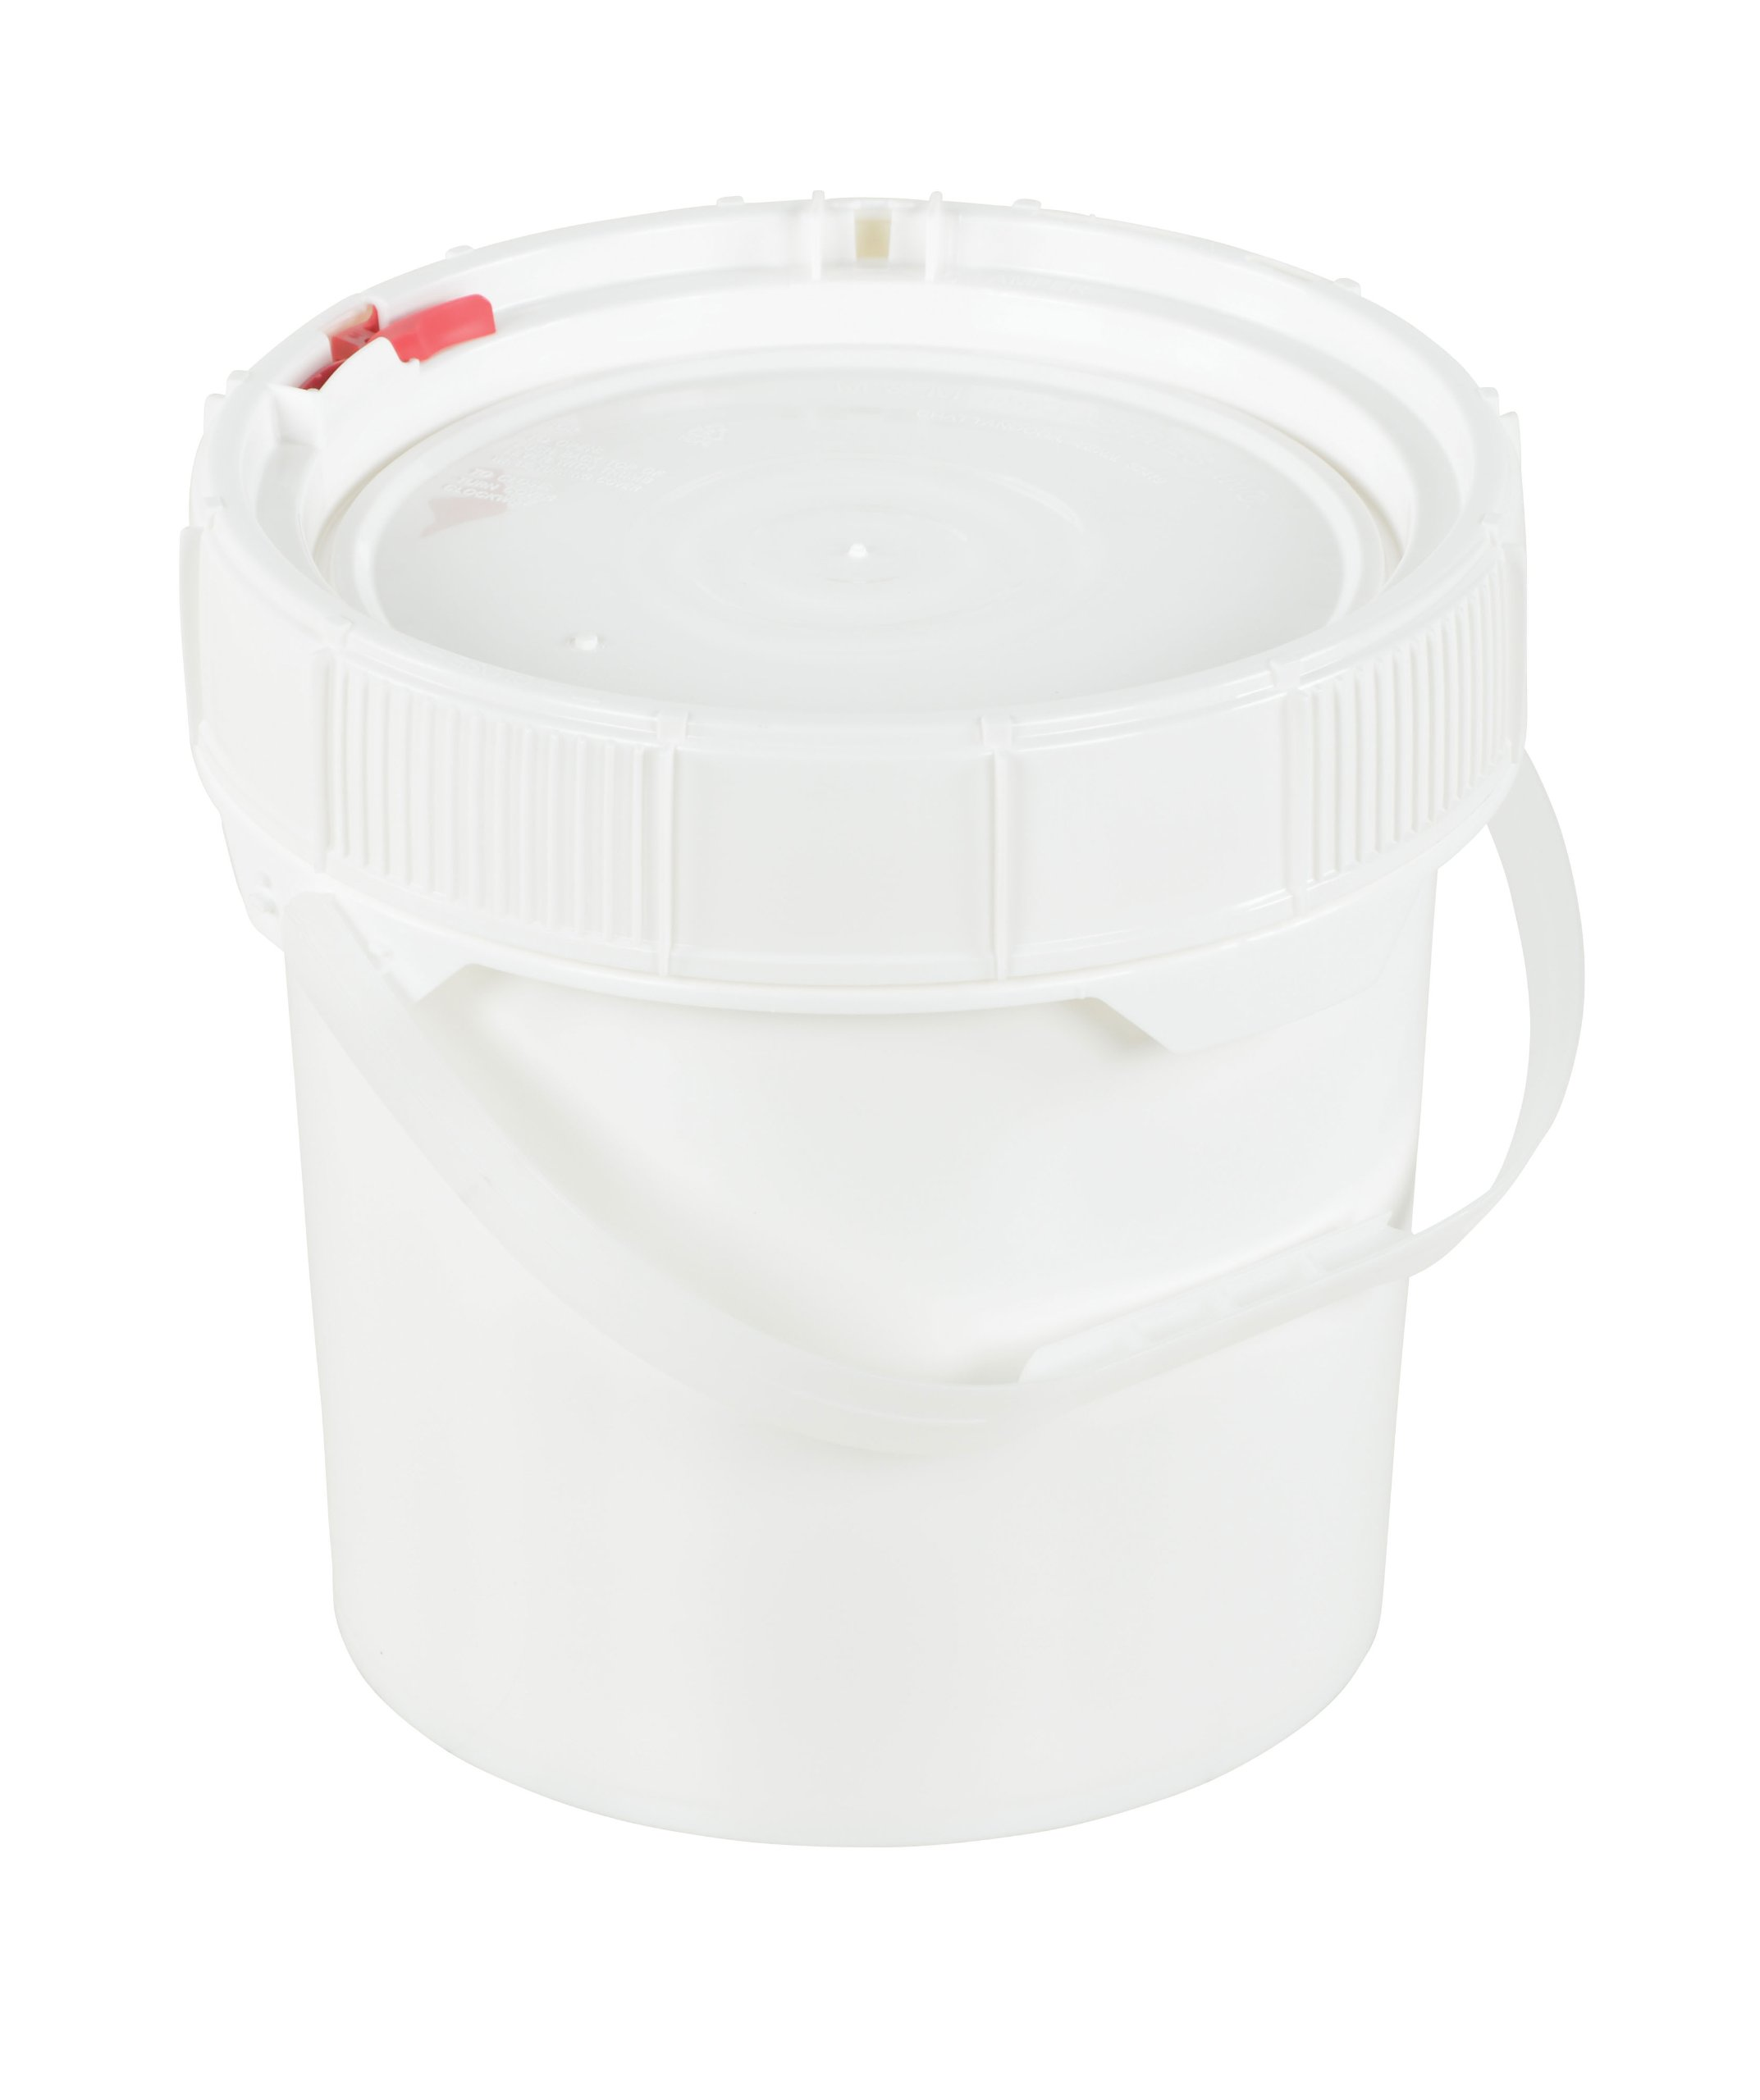 Vestil PAIL-SCR-35-W Plastic Screw Top Pail with Lid and Handle, 3.5 gallon Capacity, White